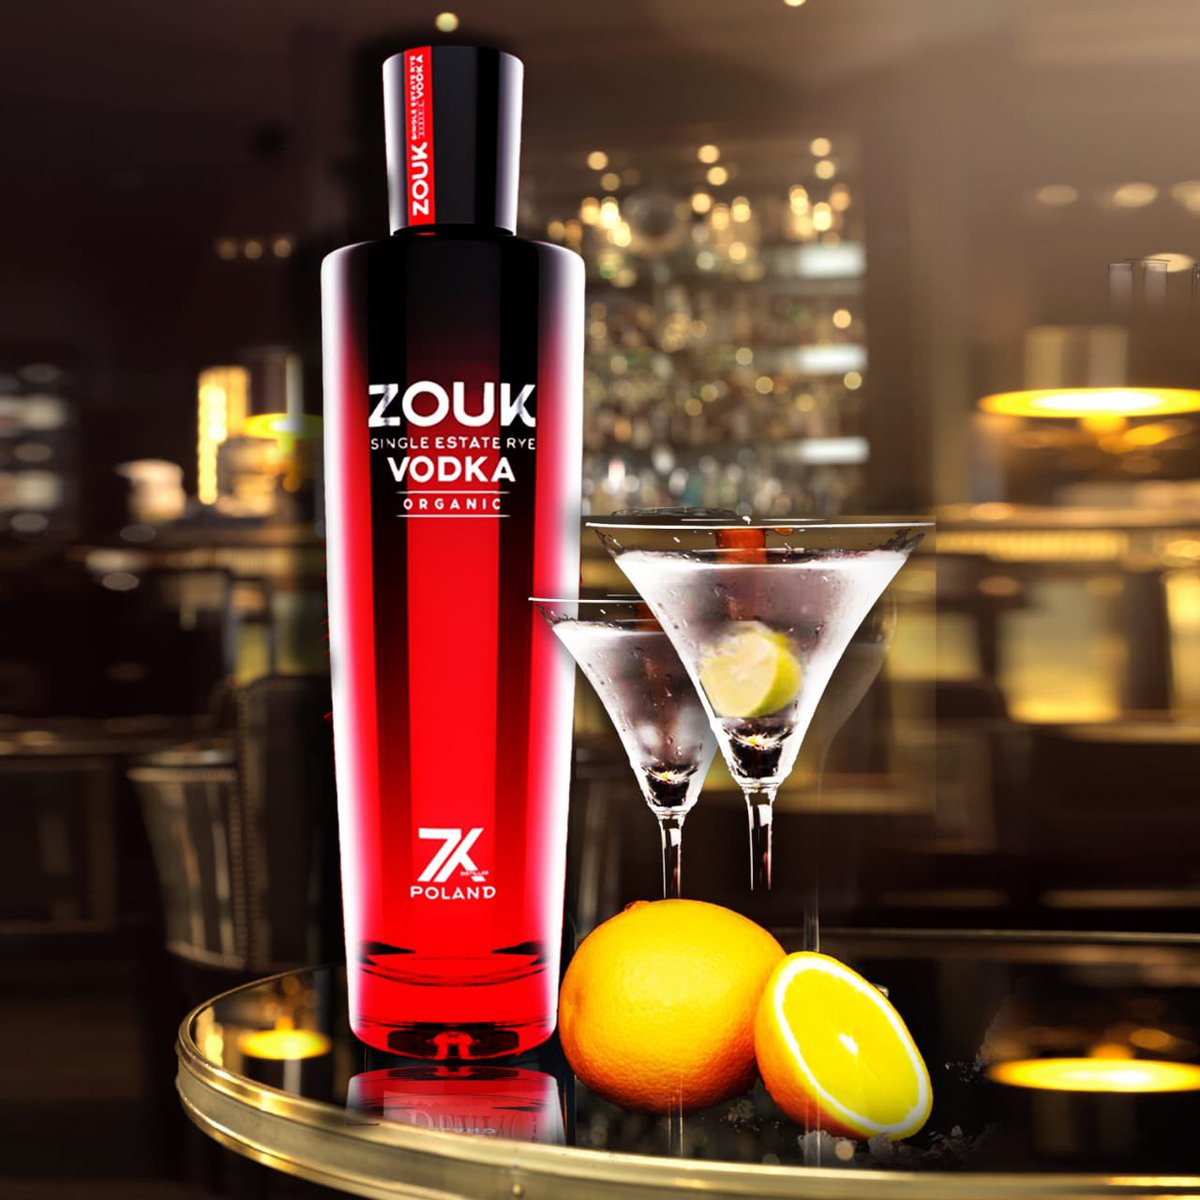 Punch up your at-home vibes this Saturday evening with Zouk Vodka   #vodka #vodkashots #saturdayvibes #saturday #saturdaynight #enjoylife  #zoukvodka